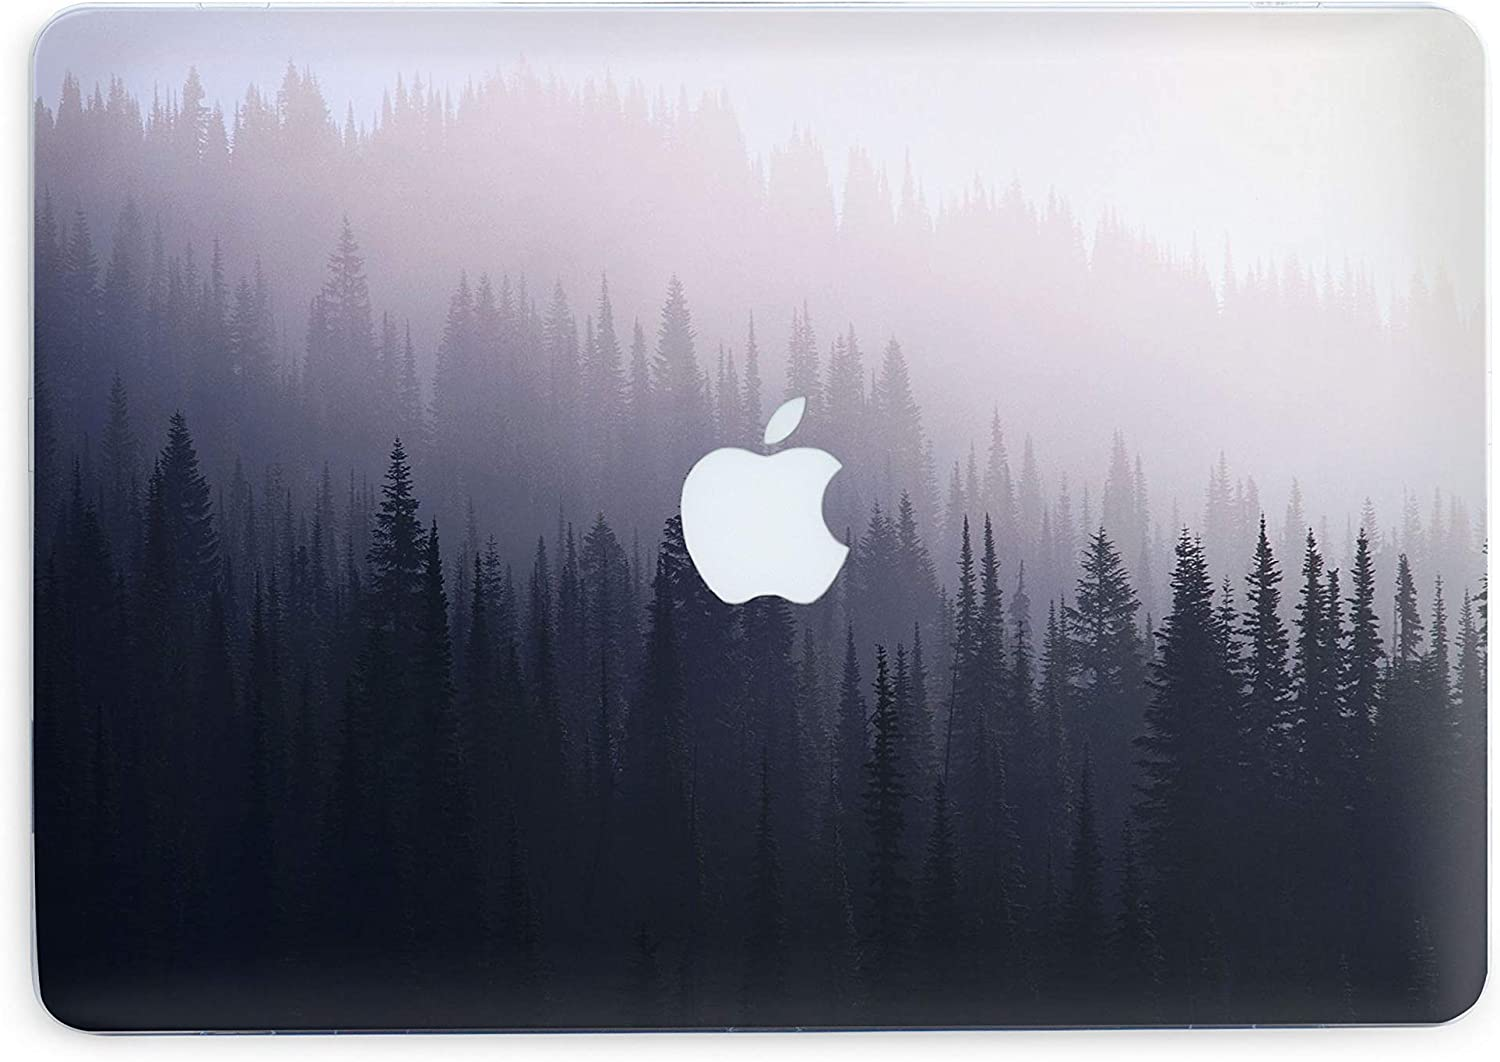 Foggy Forest Laptop Case Air 11 A1370 1465 Cool Cover Plastic Cases with Print Nature